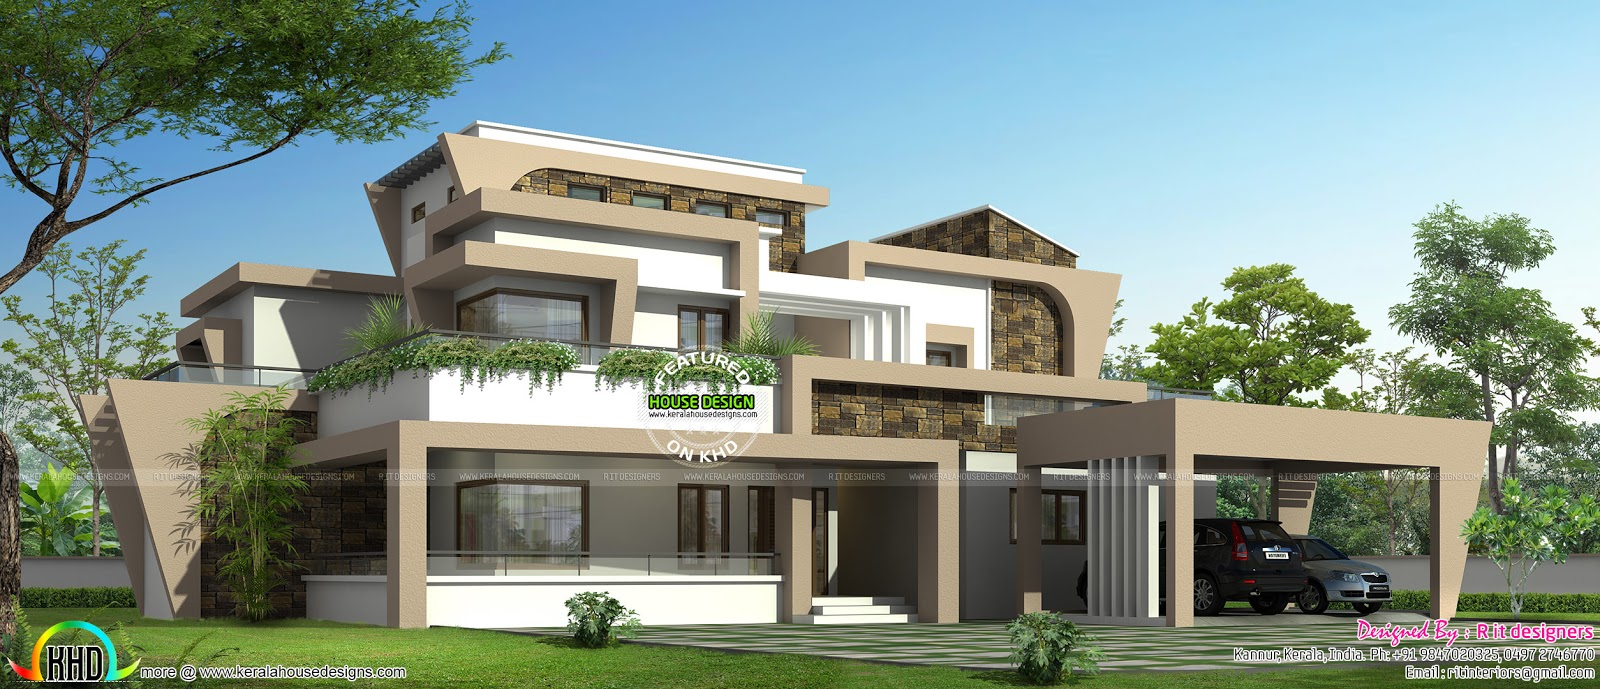 Unique modern home design in kerala kerala home design for Unique modern house plans